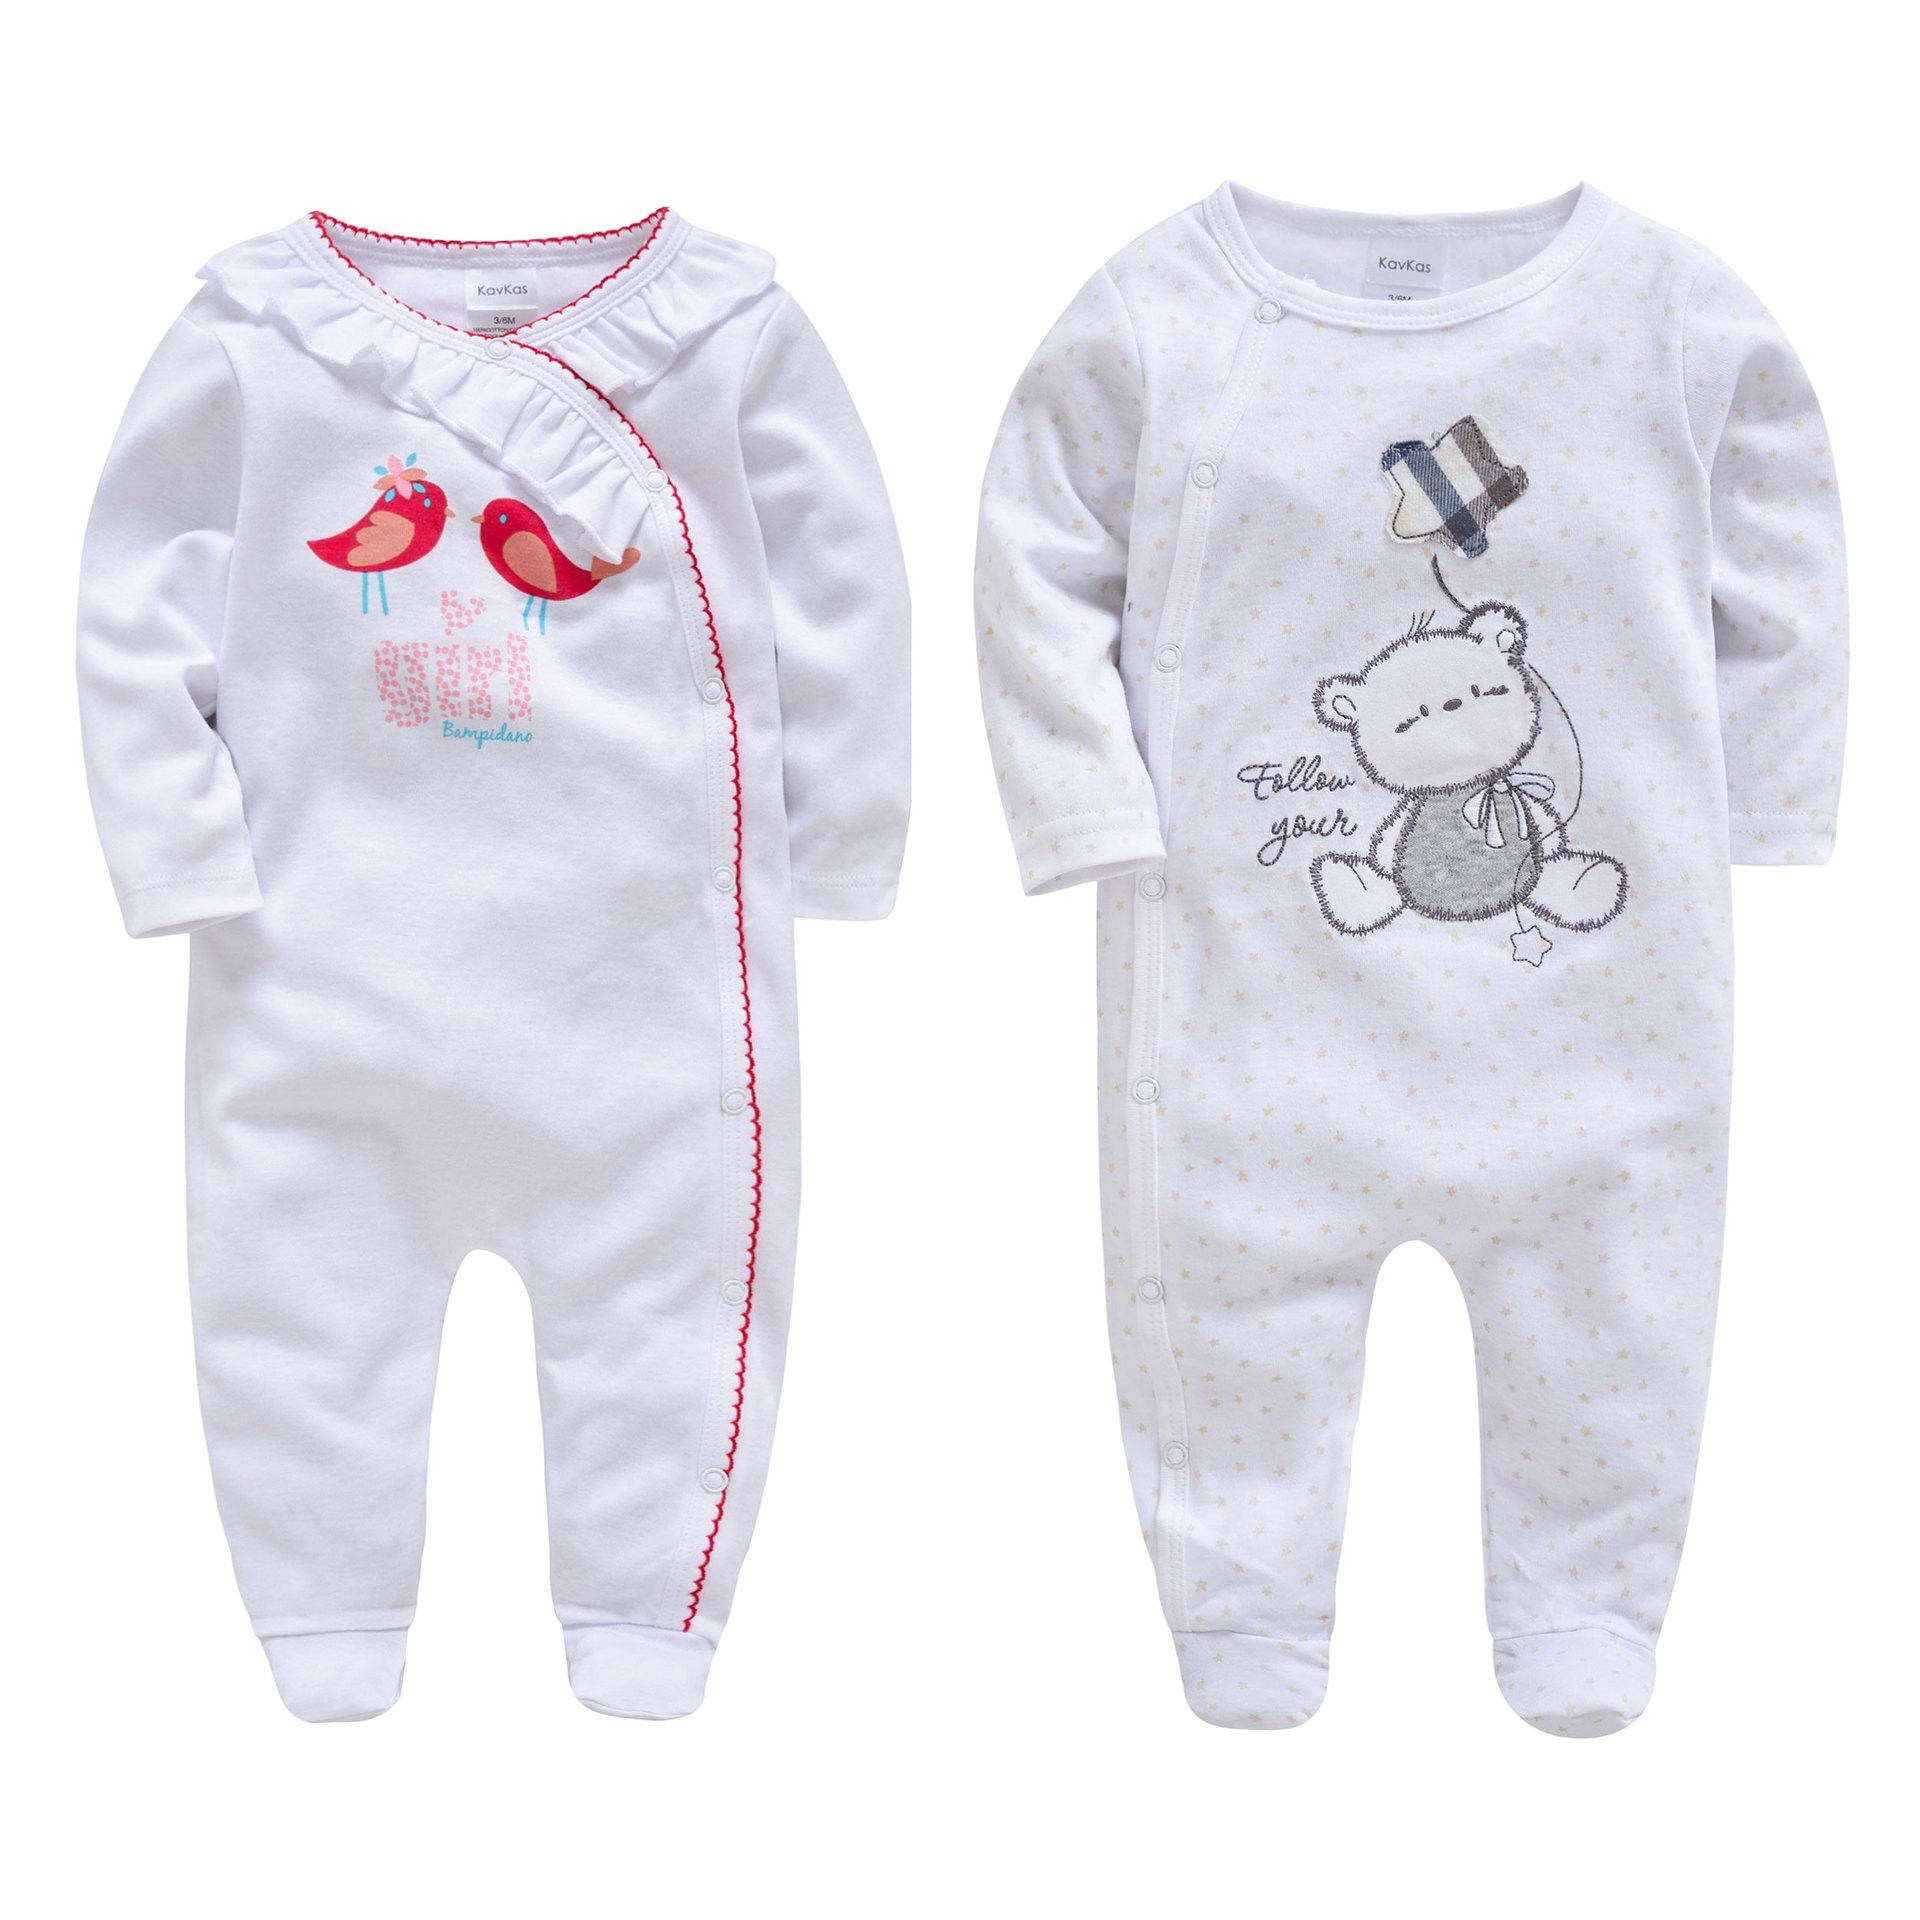 fcabbe931a17 2019 Morningtwo Newborn Baby Boys And Girls Romper Clothes Long ...